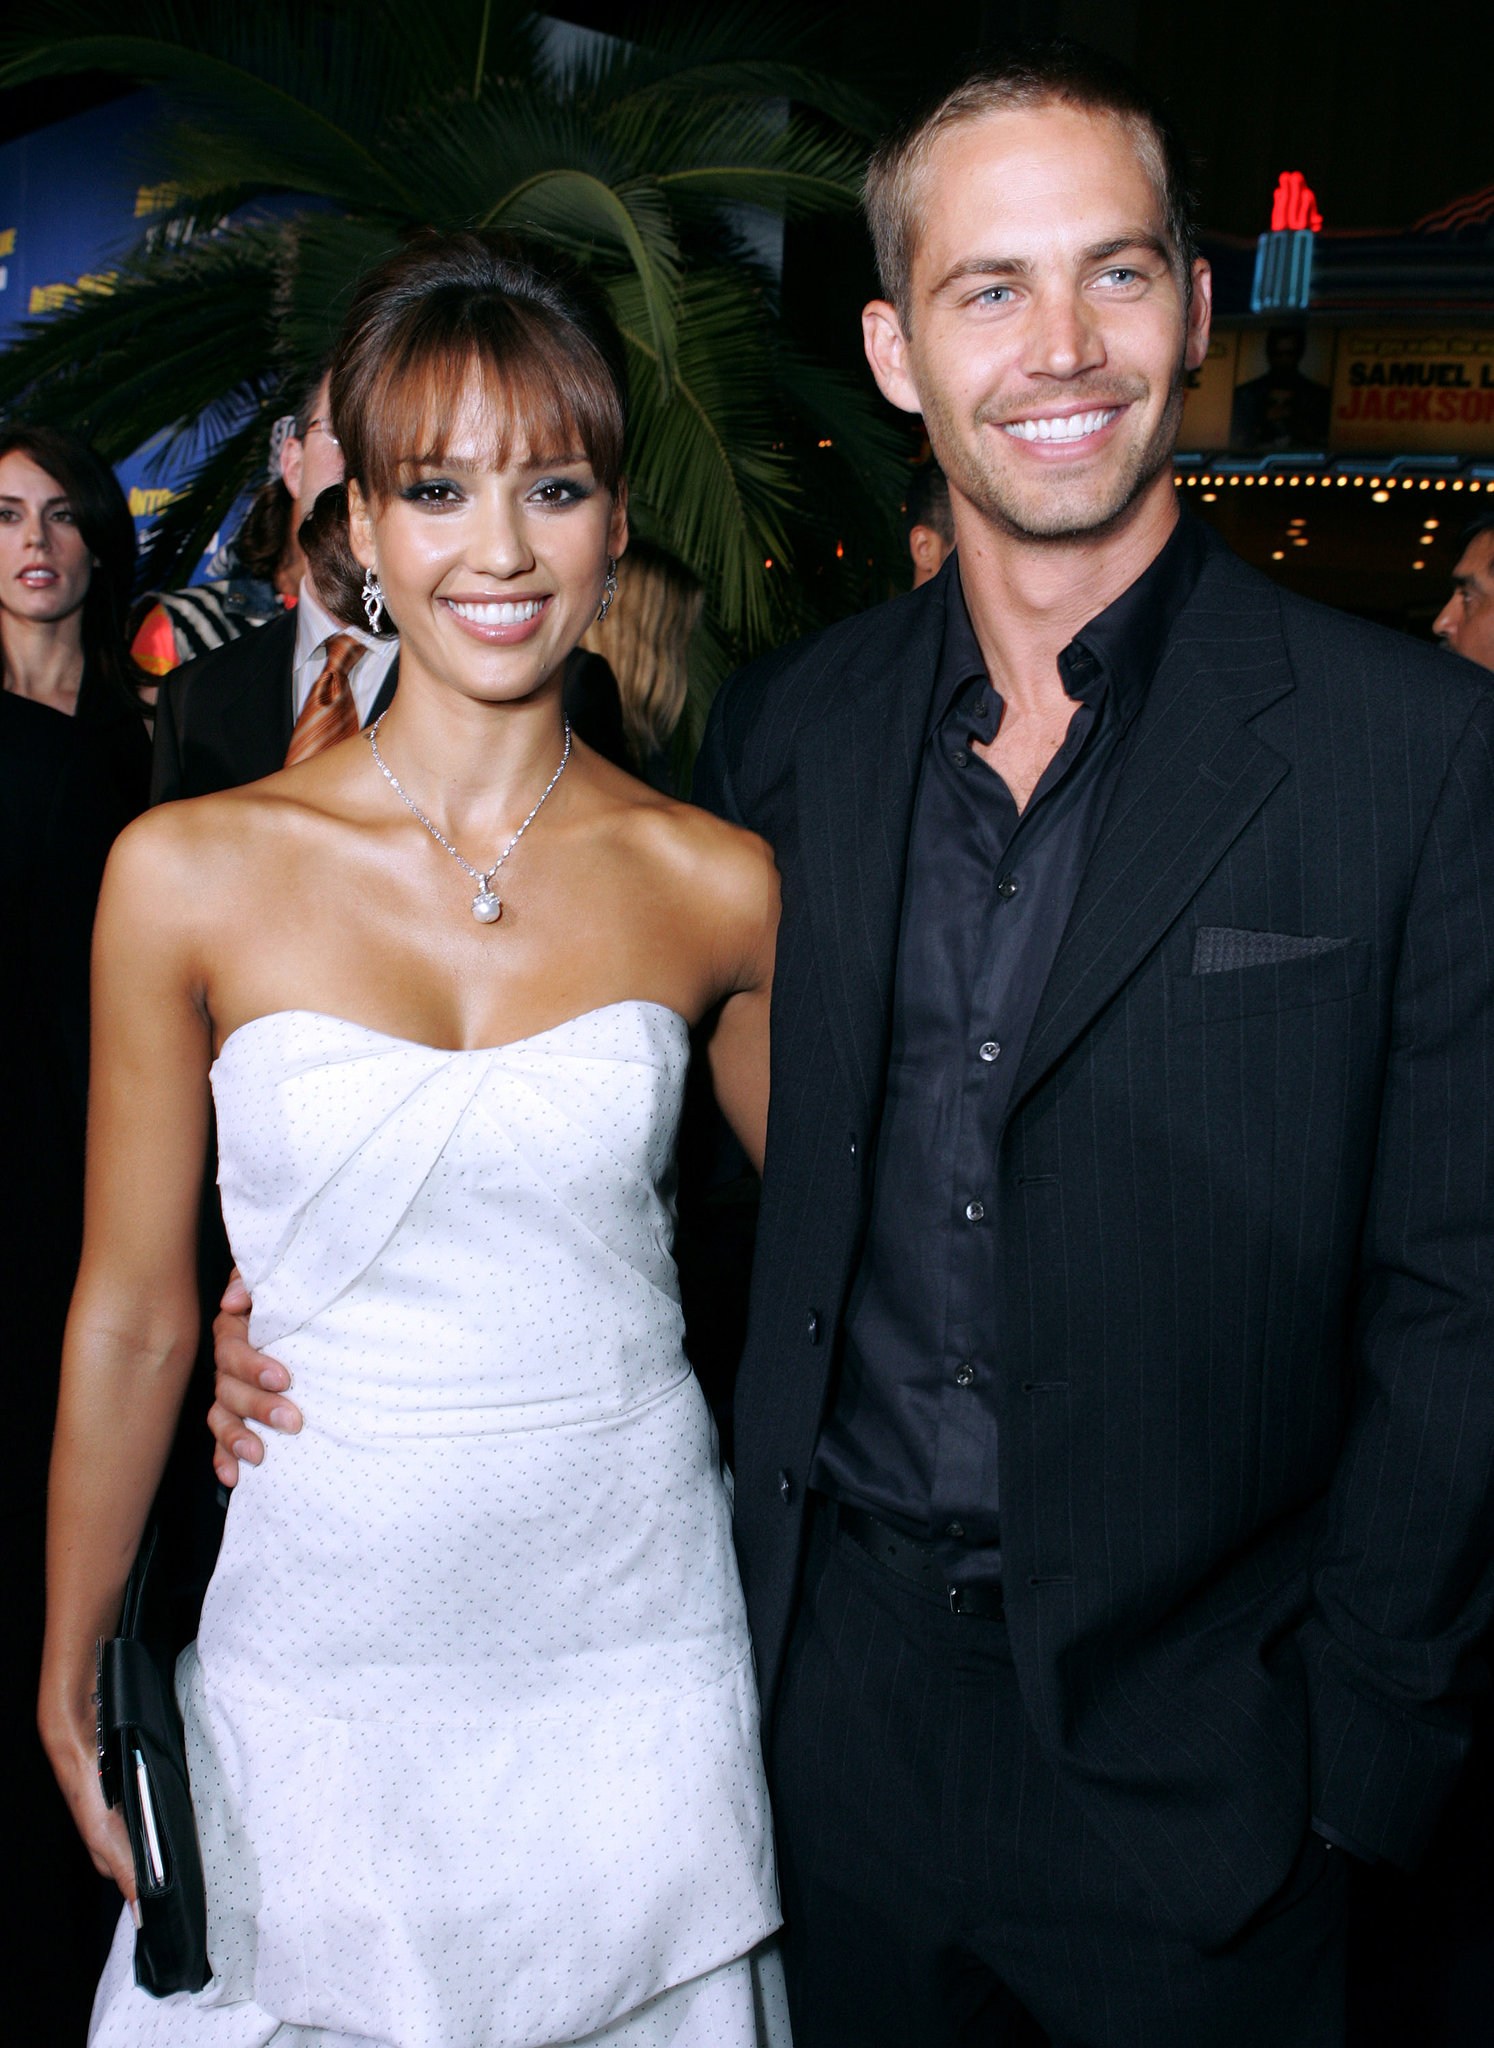 paul and jessica alba smiled for photos together at the la